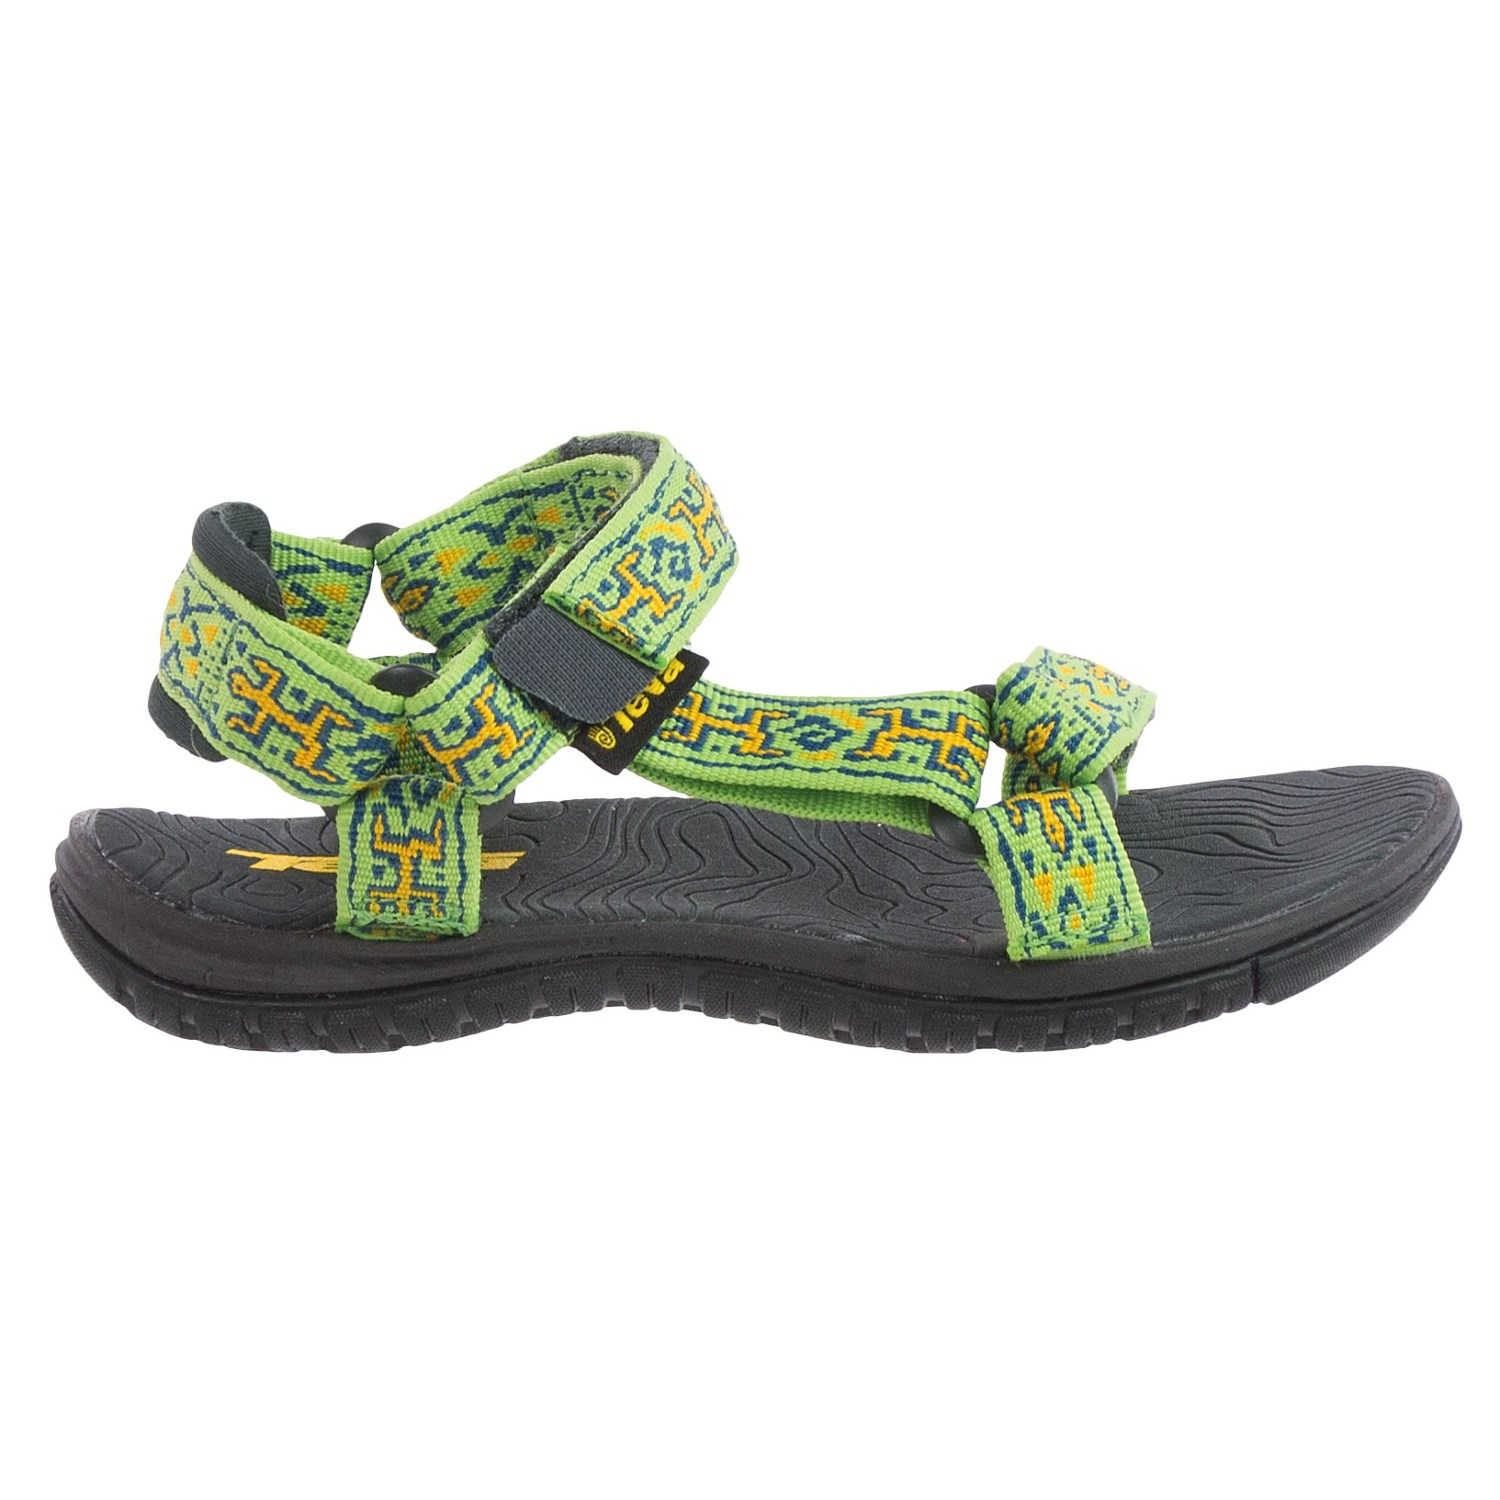 Buy Teva Shoes Online